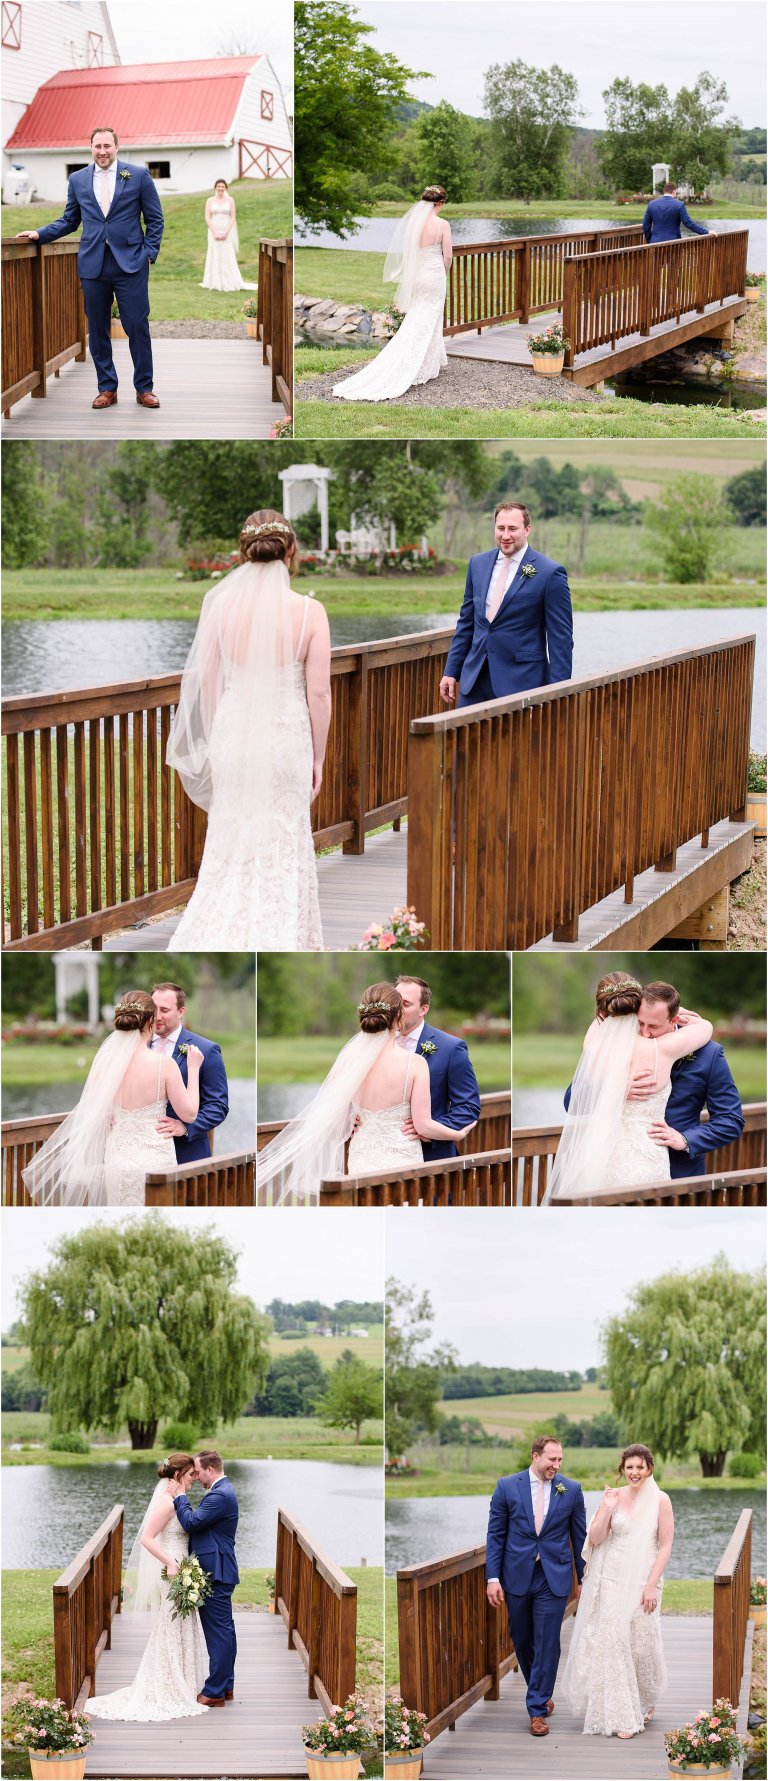 PA barn wedding venue photographer Crystal Satriano captures the first look of a bride and groom